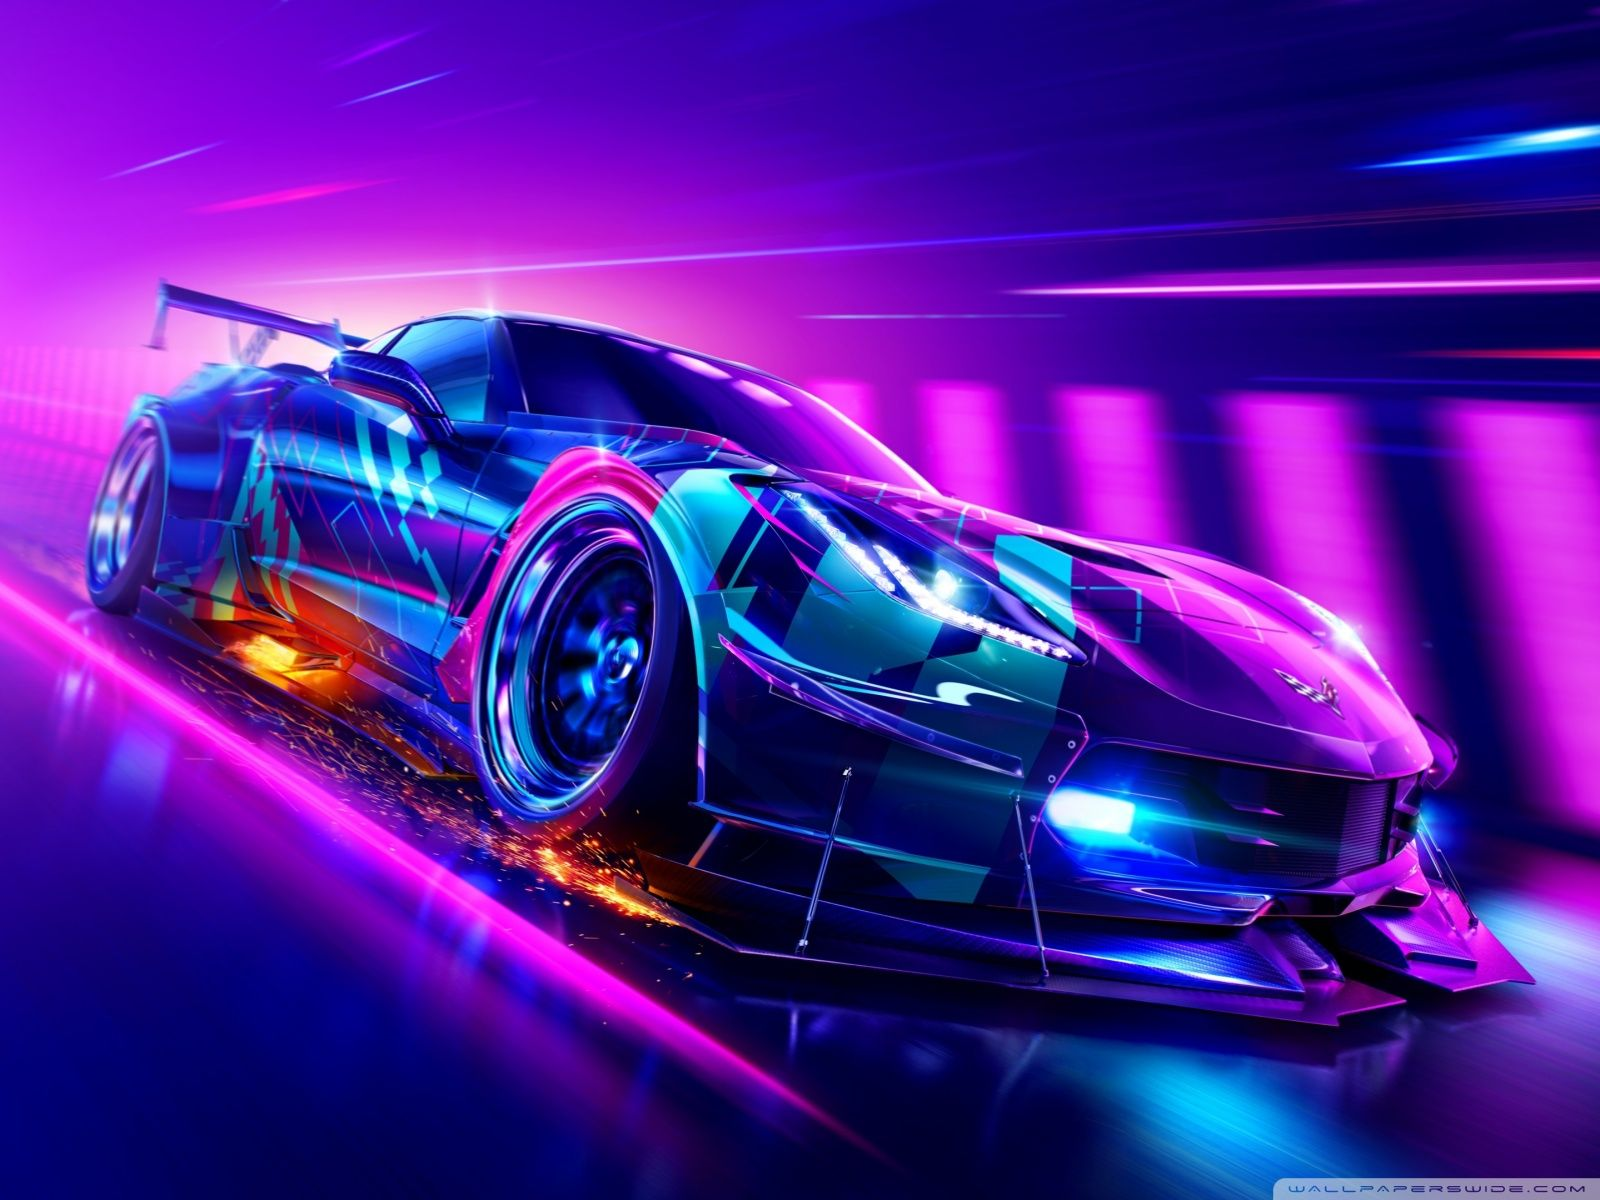 12 X 12 Car Wallpapers   Top Free 12 X 12 Car Backgrounds ...